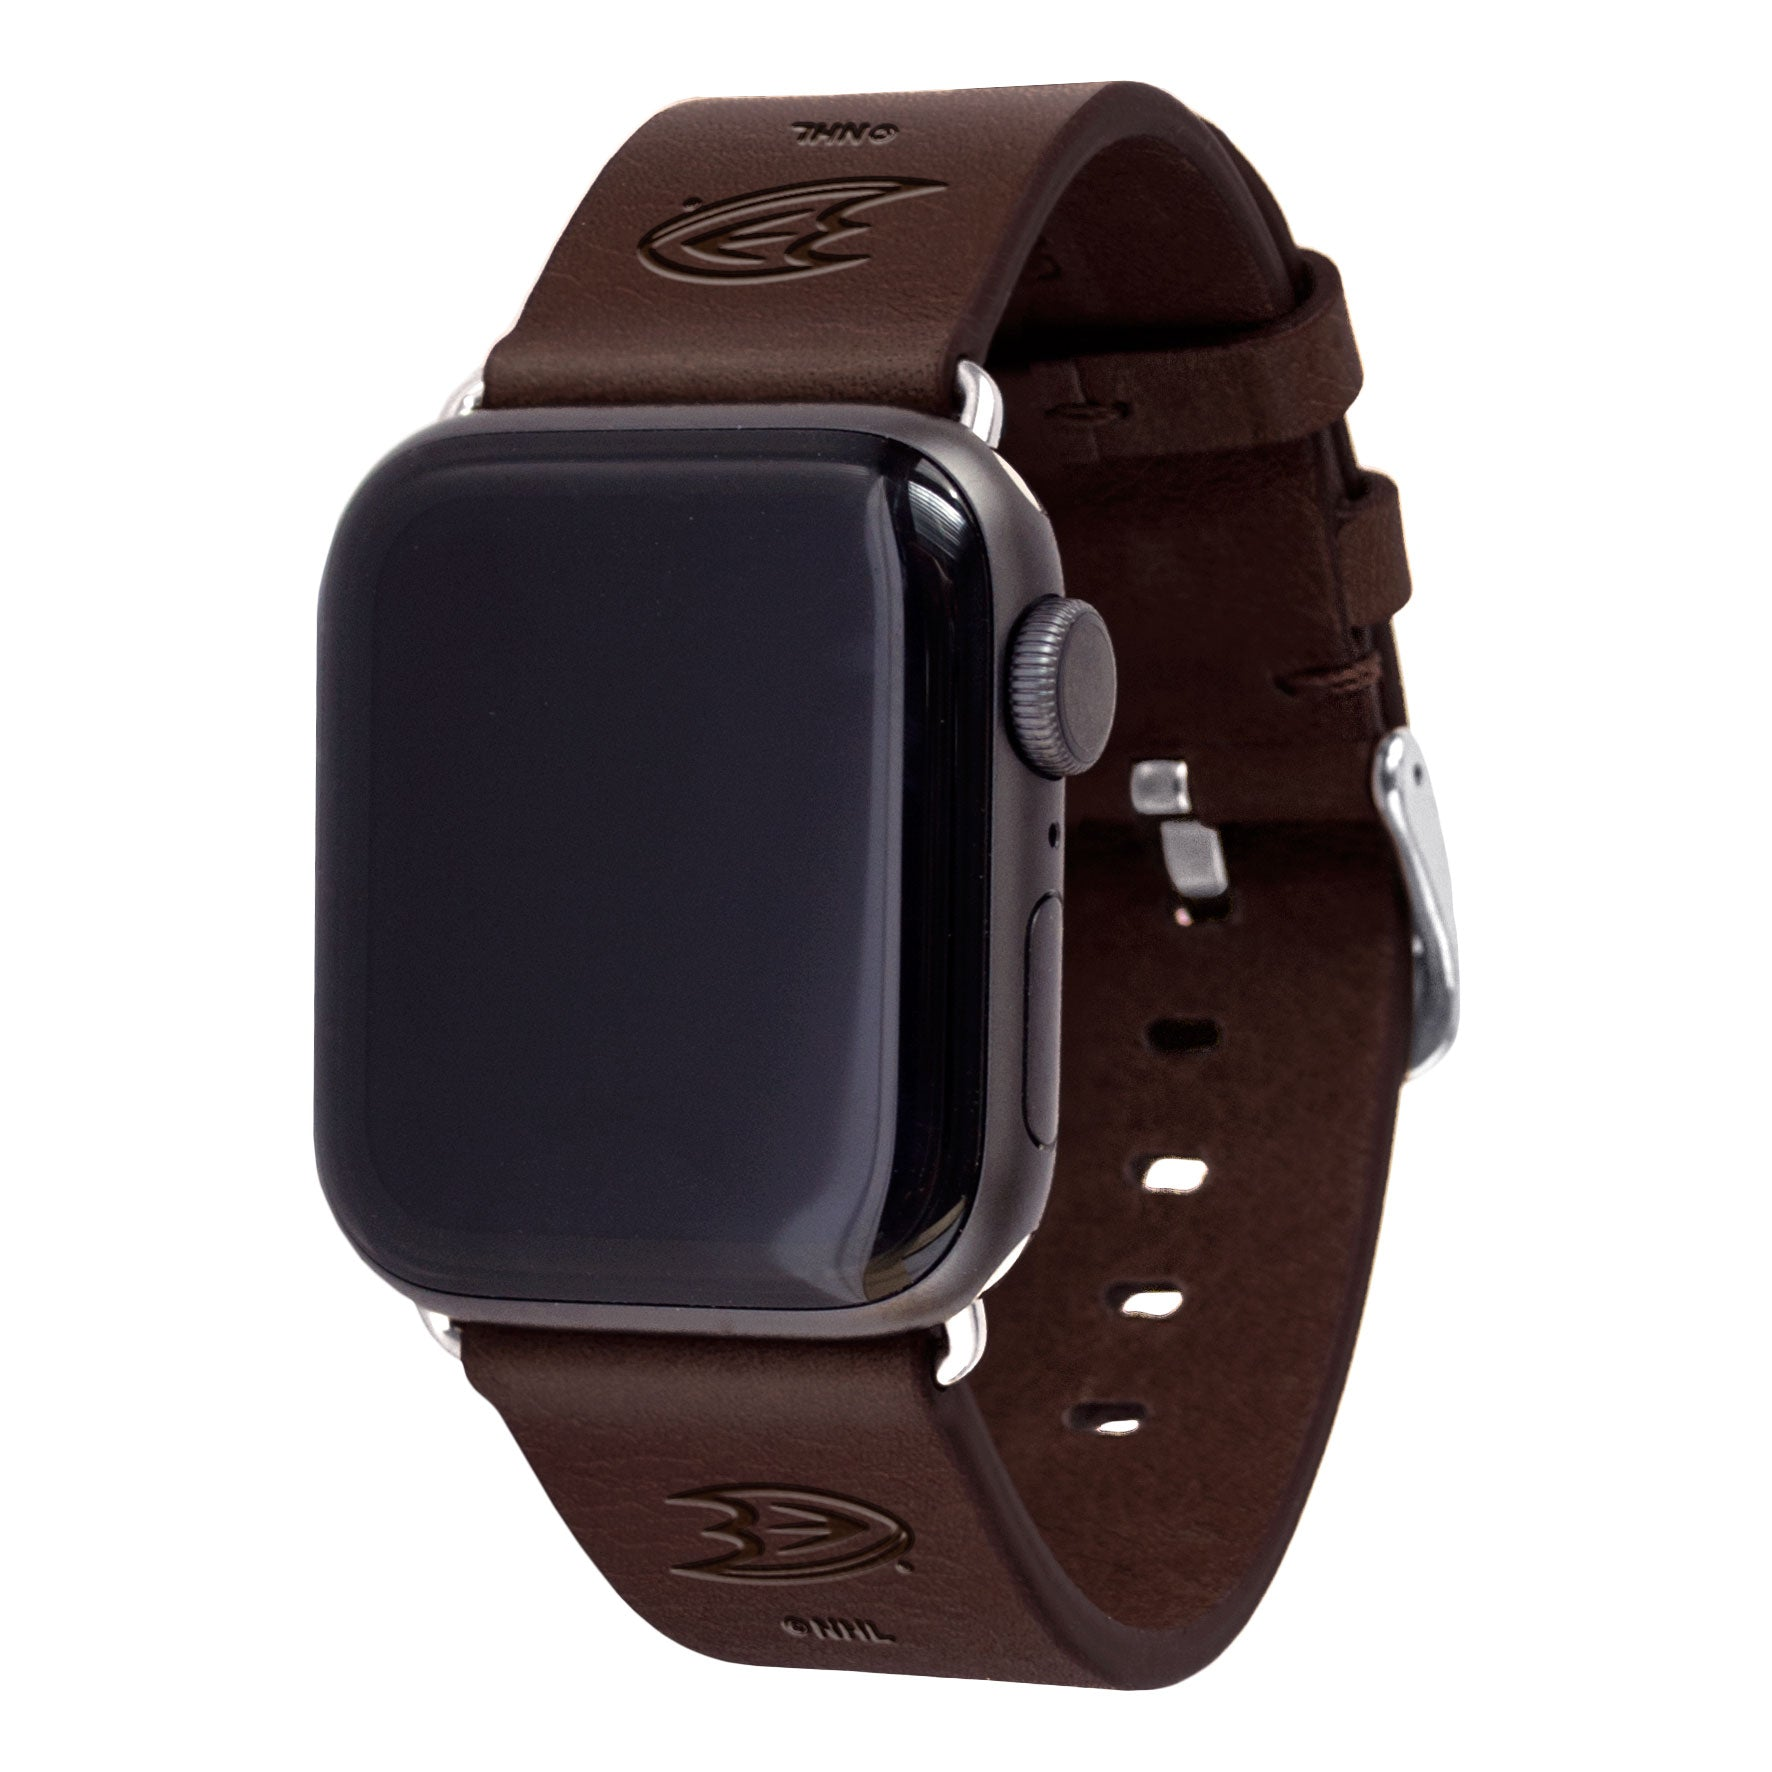 Anaheim Ducks Leather Apple Watch Band - AffinityBands